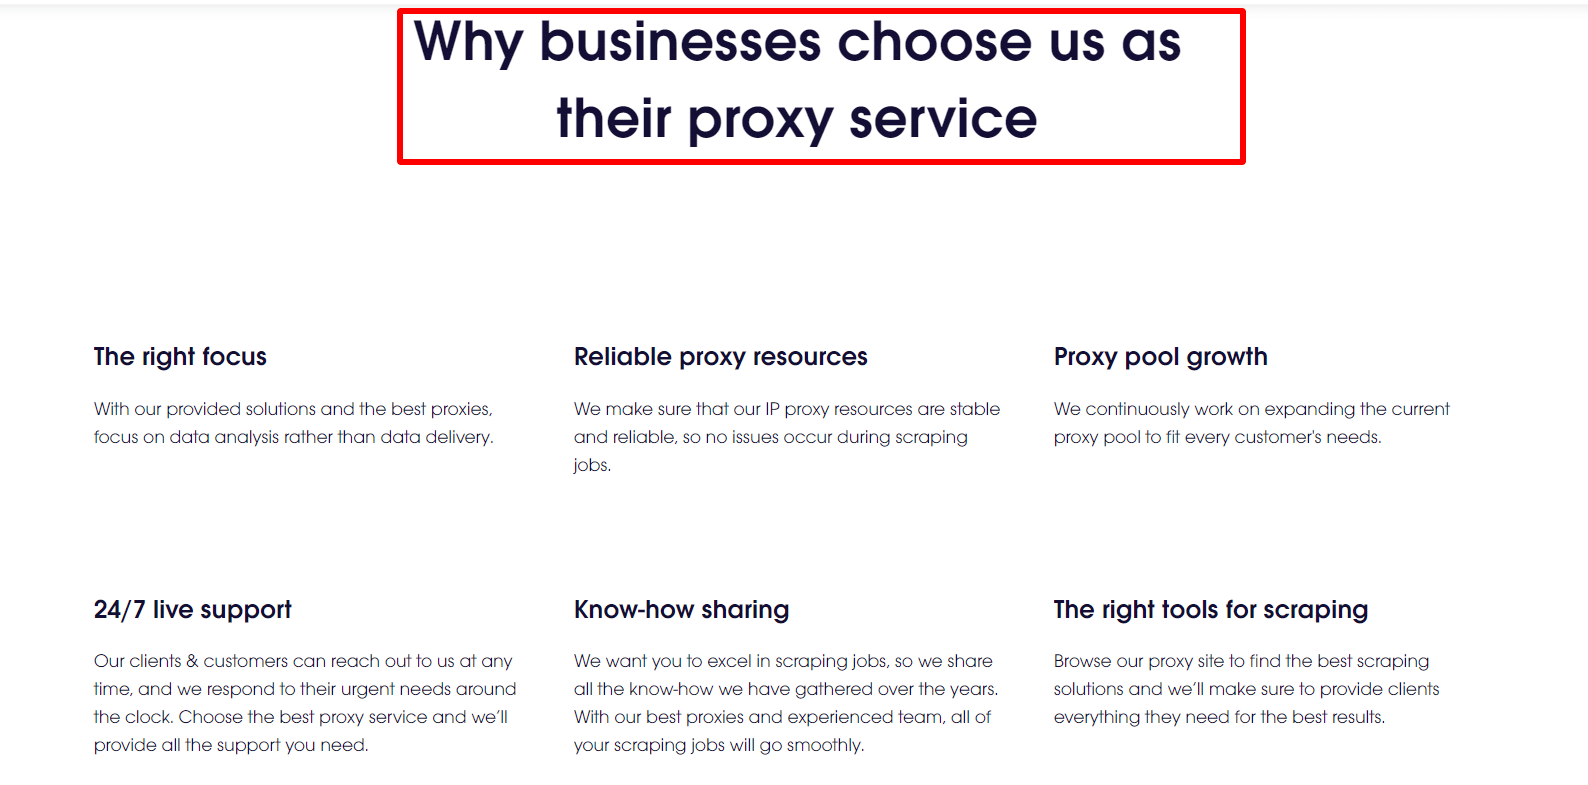 Innovative-Proxy-Service-to-Gather-Data-at-Scale-why choose-Oxylabs